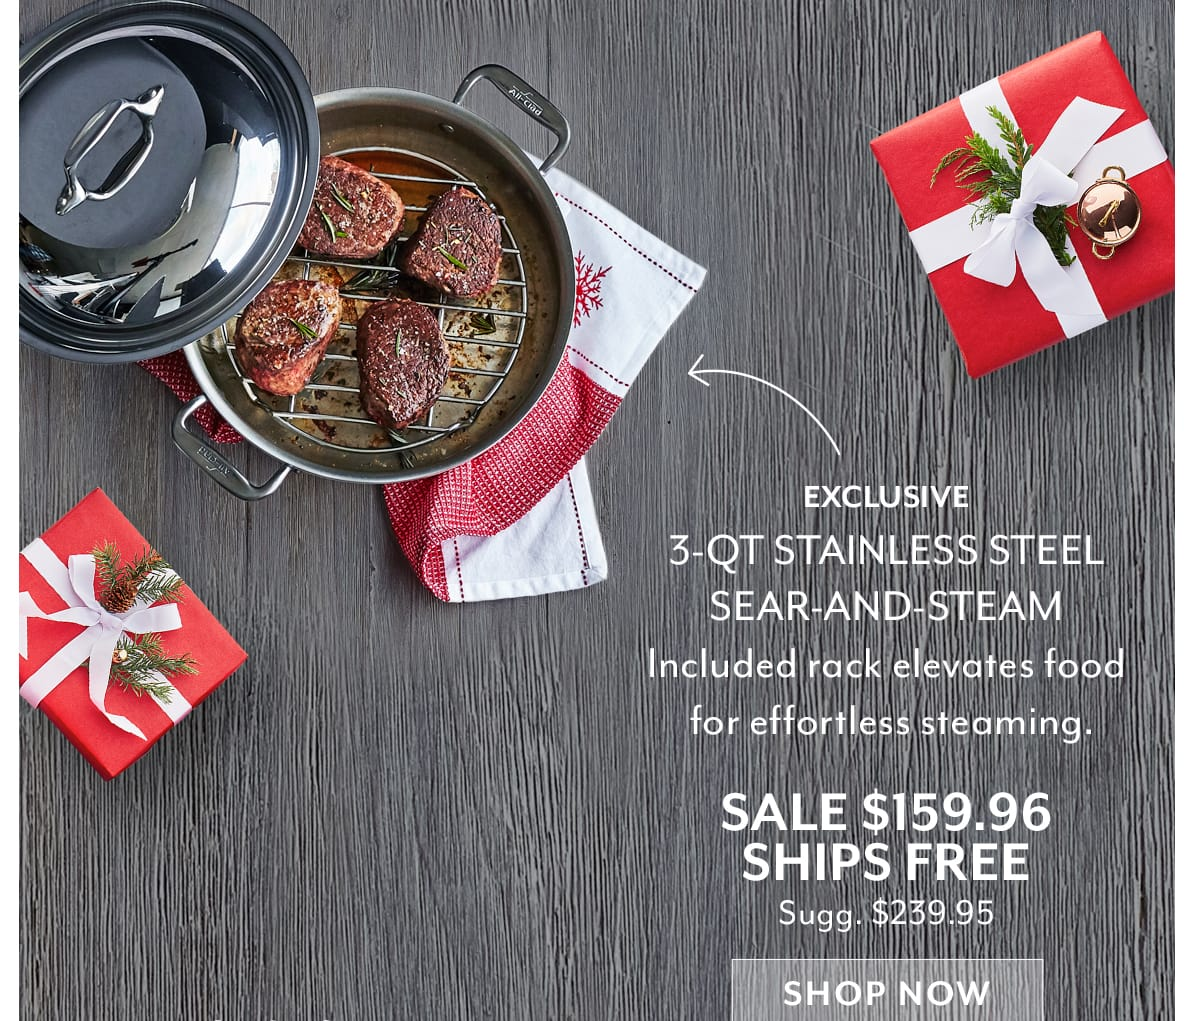 Stainless Steel Sear-and-Steam